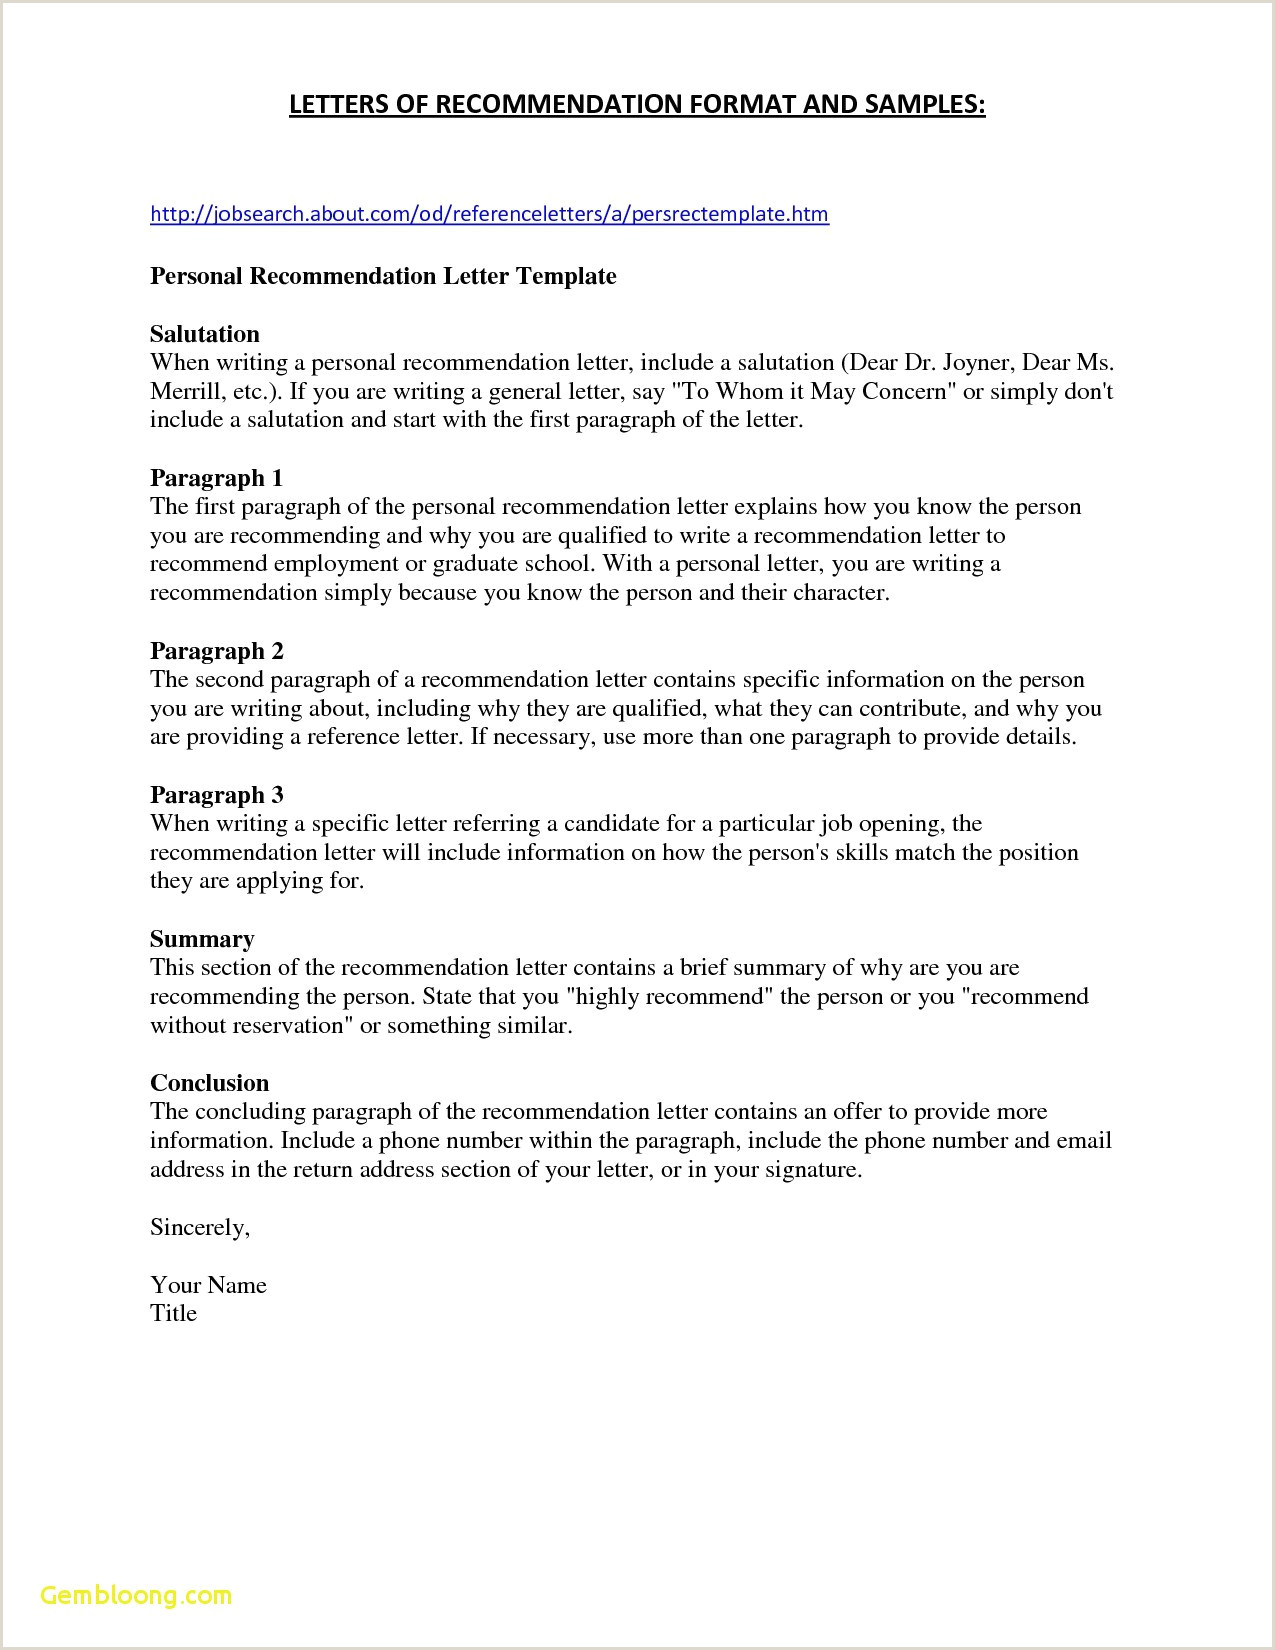 Letter From Mickey Mouse Template Sample Re Mendation Letter for Admission to College